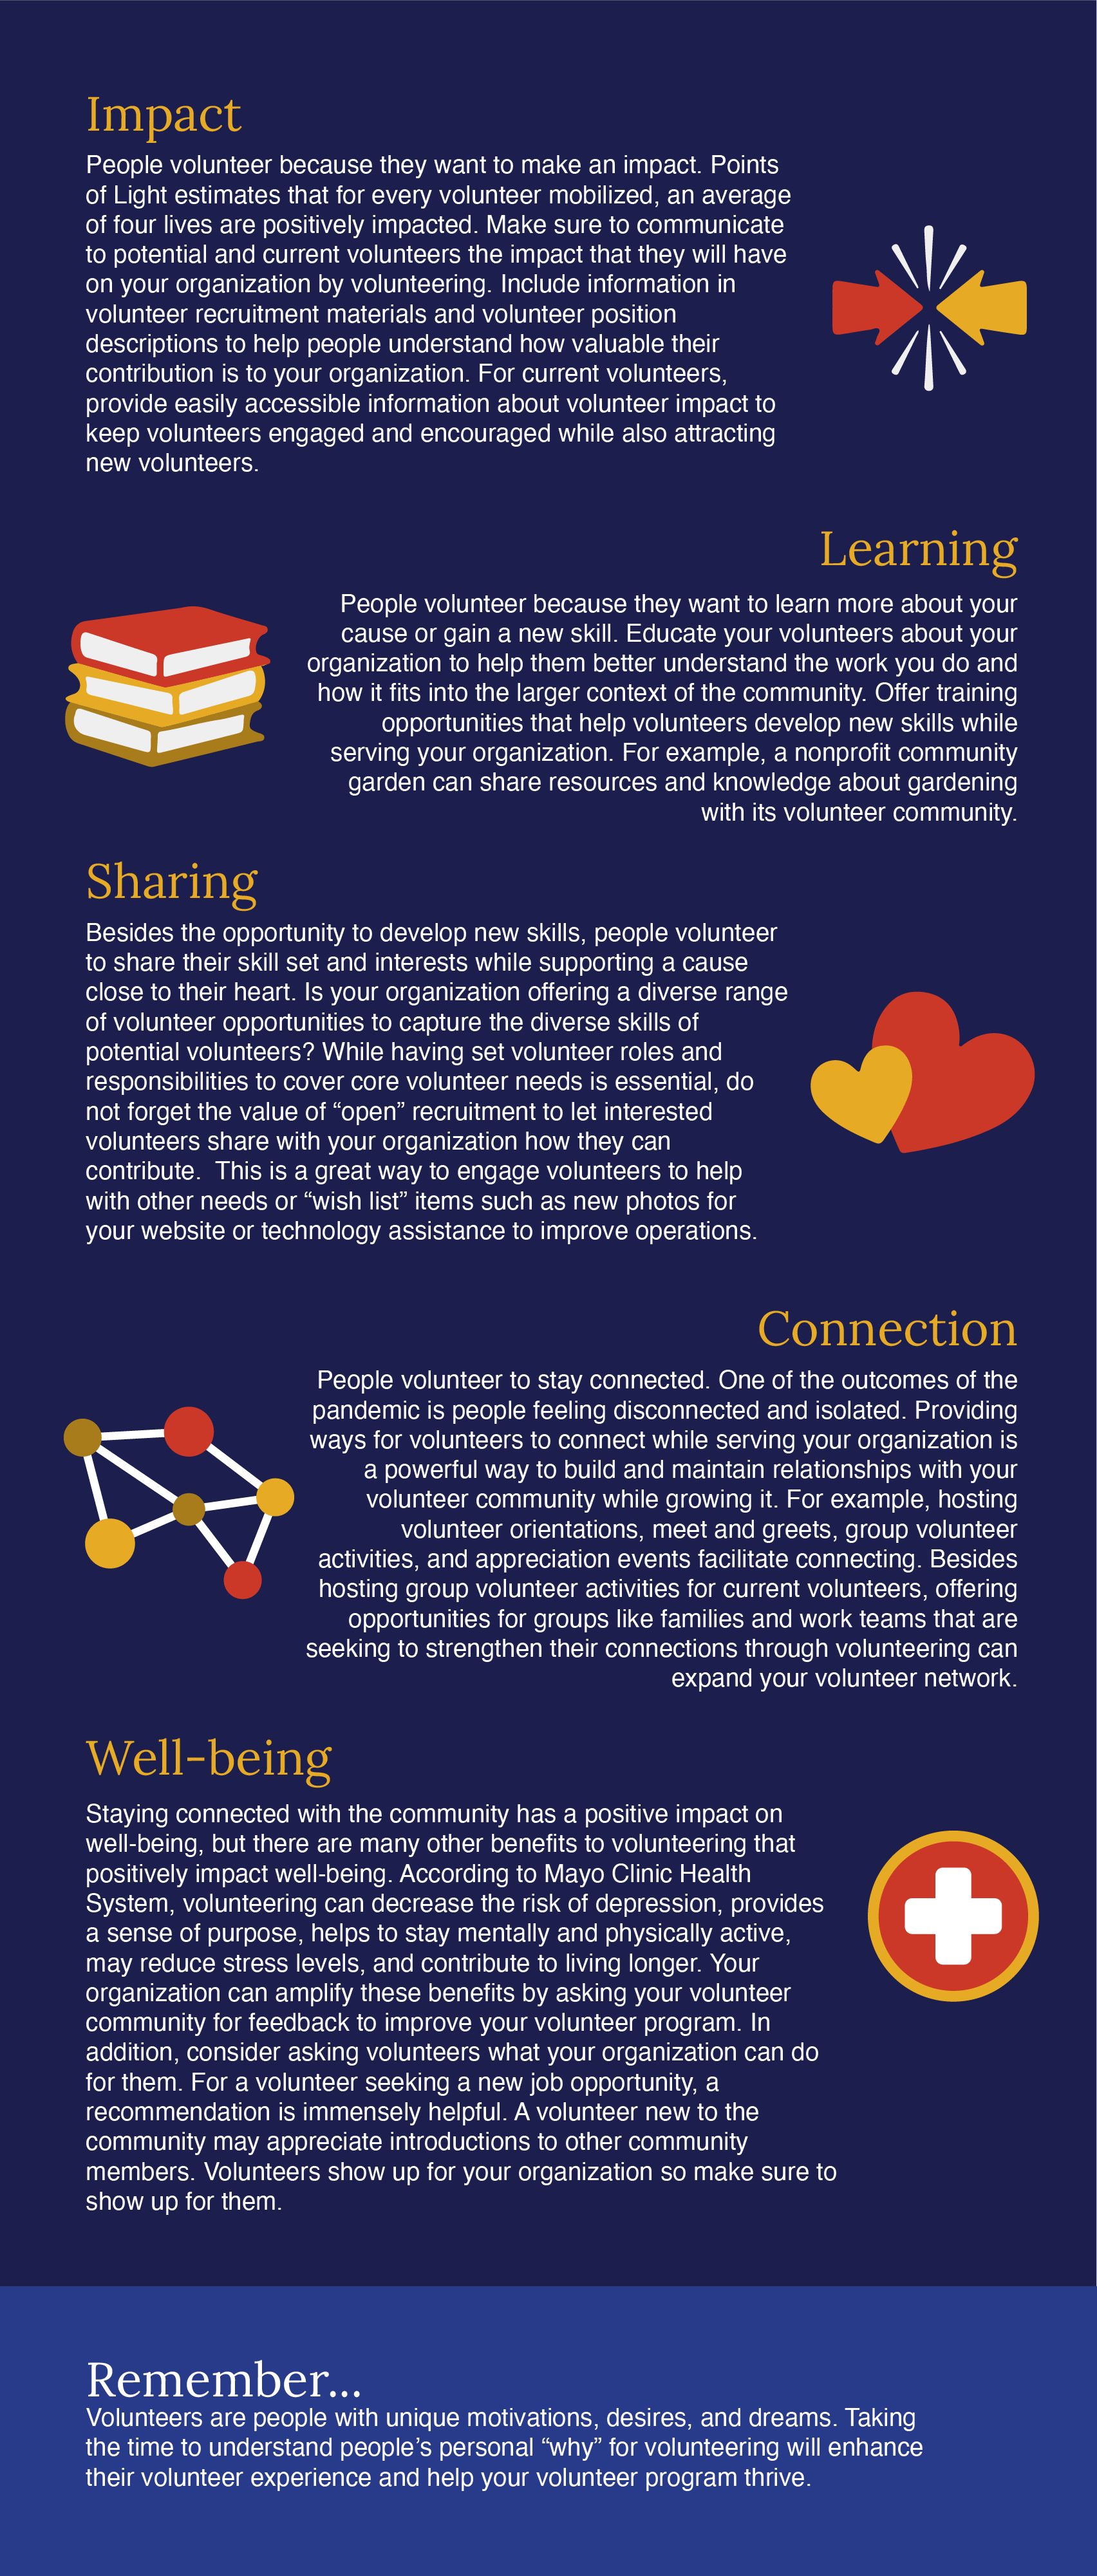 The INS Group Volunteering infographic